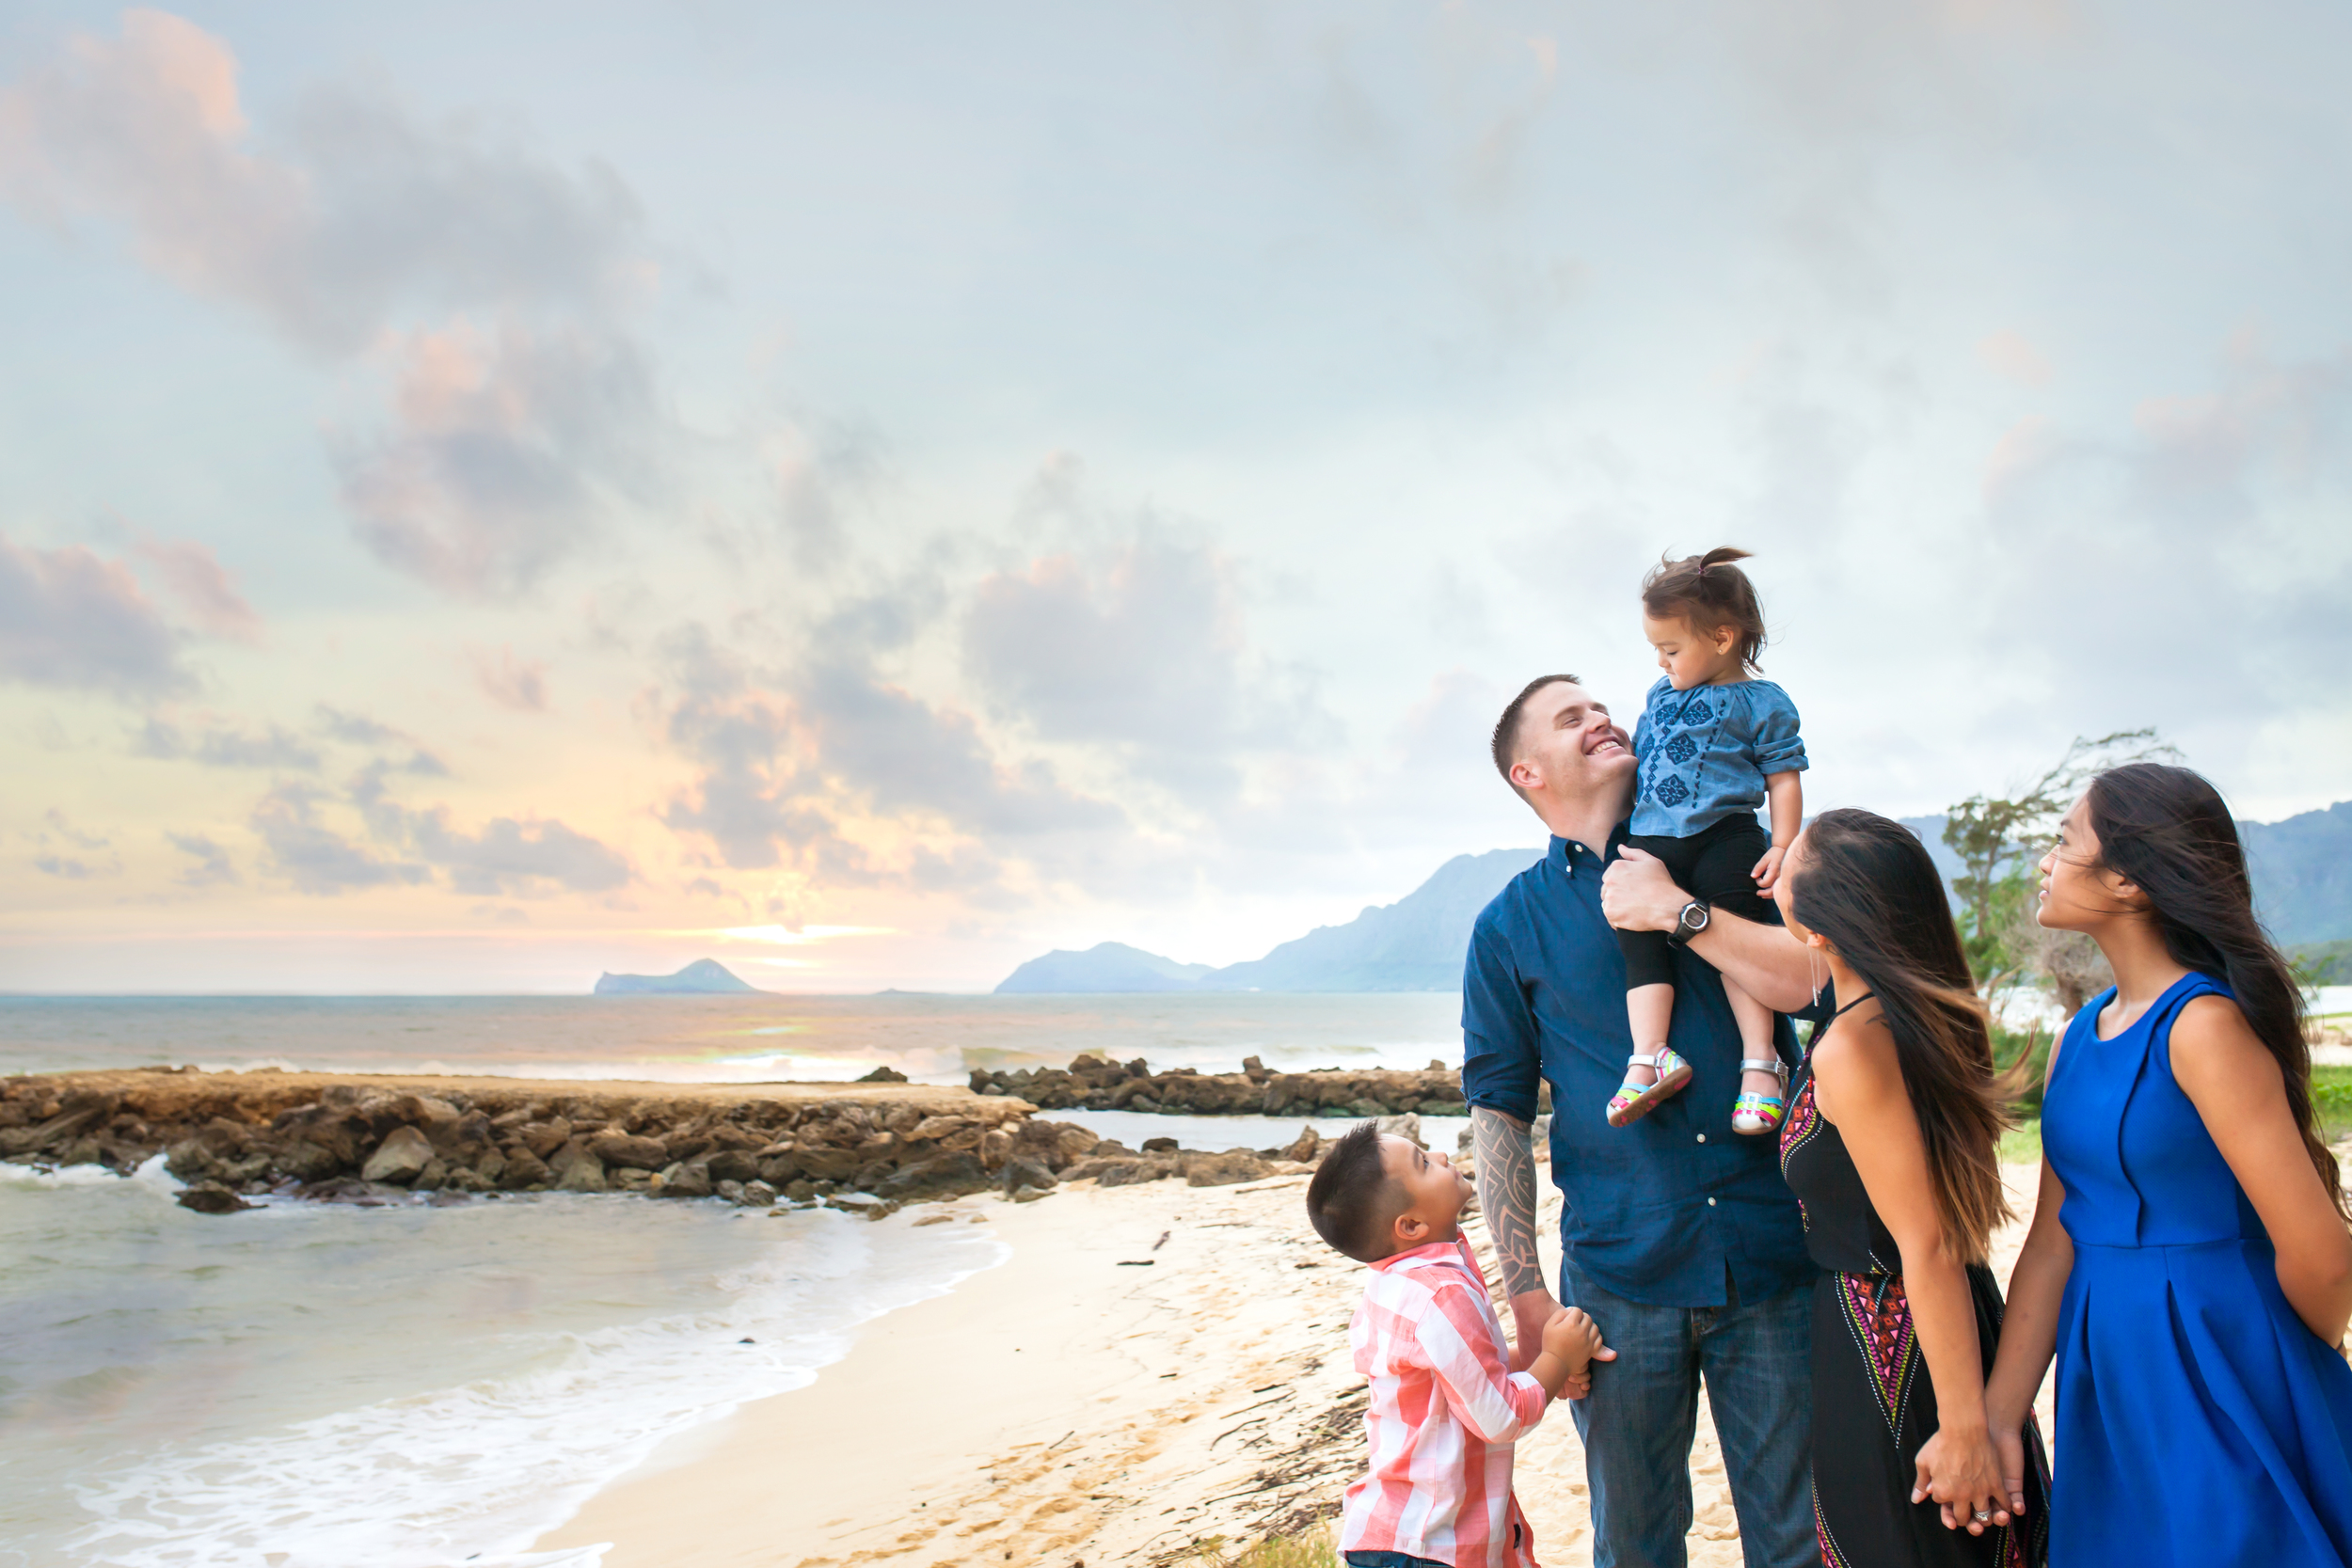 Dean Family. New Wave Photography. Family Photographer. California Photographer. Hawaii Photographer. Family and Couples Photography-2.jpg